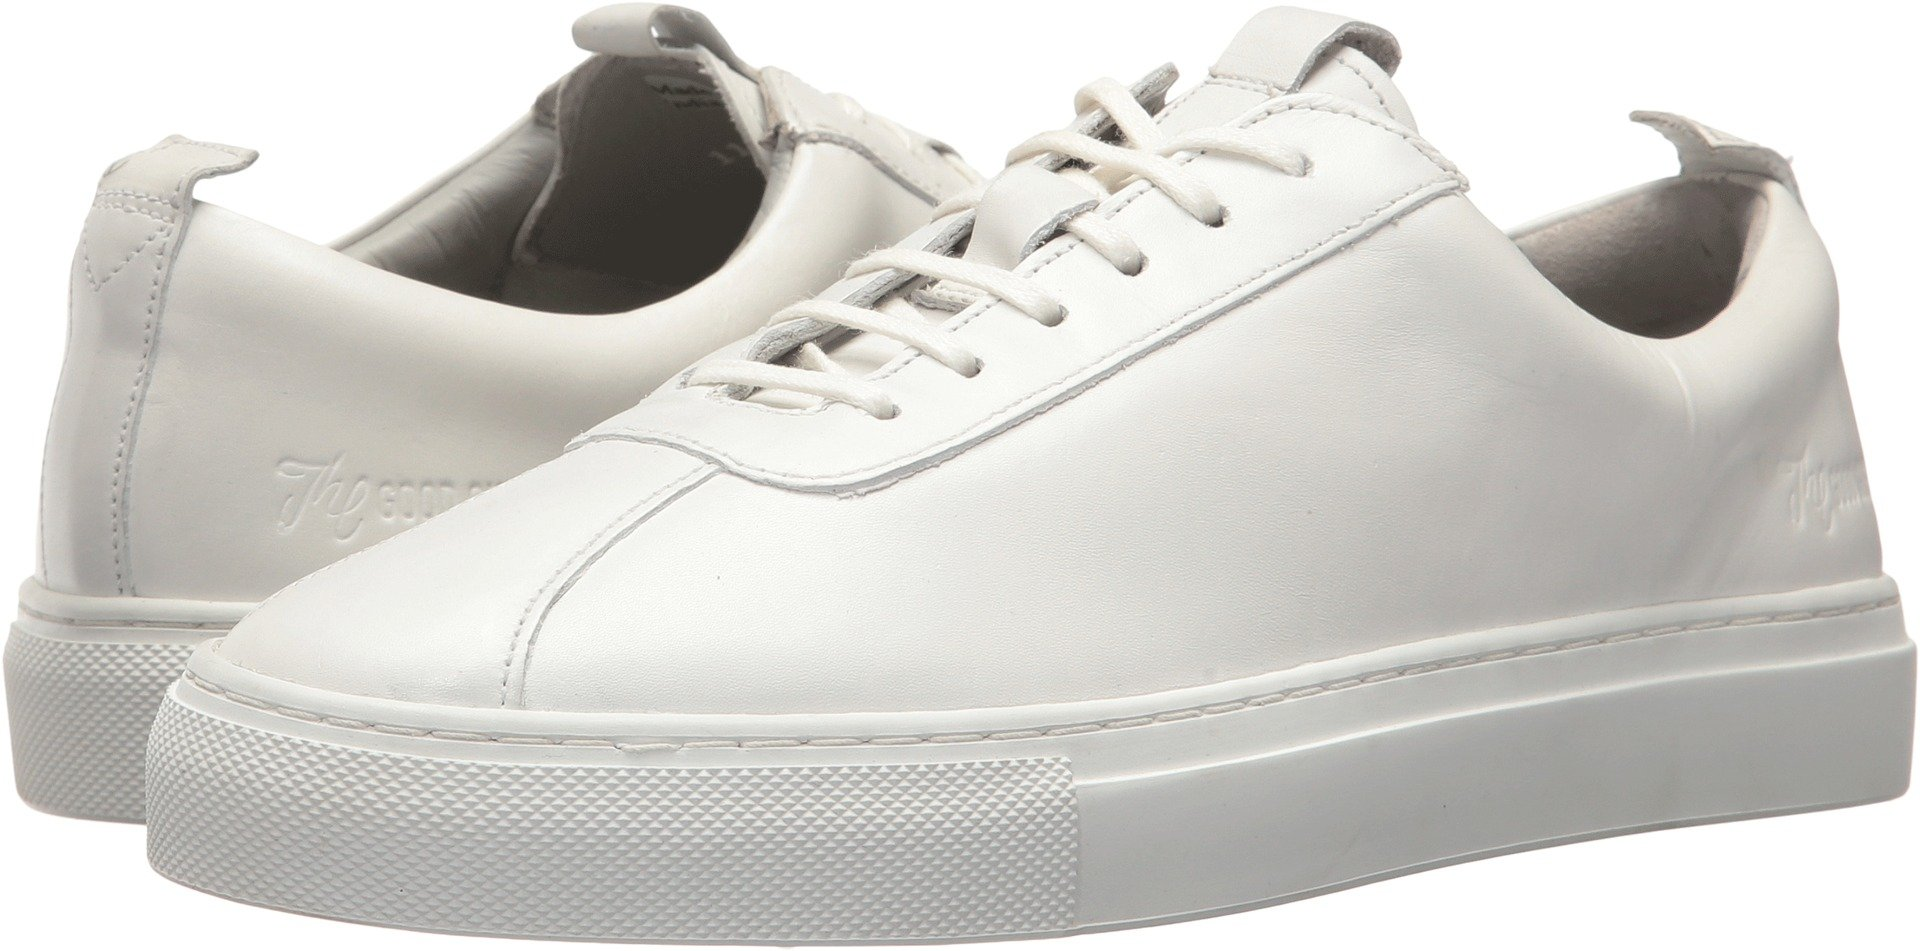 Grenson Women's Low Top Sneaker White 7 M UK